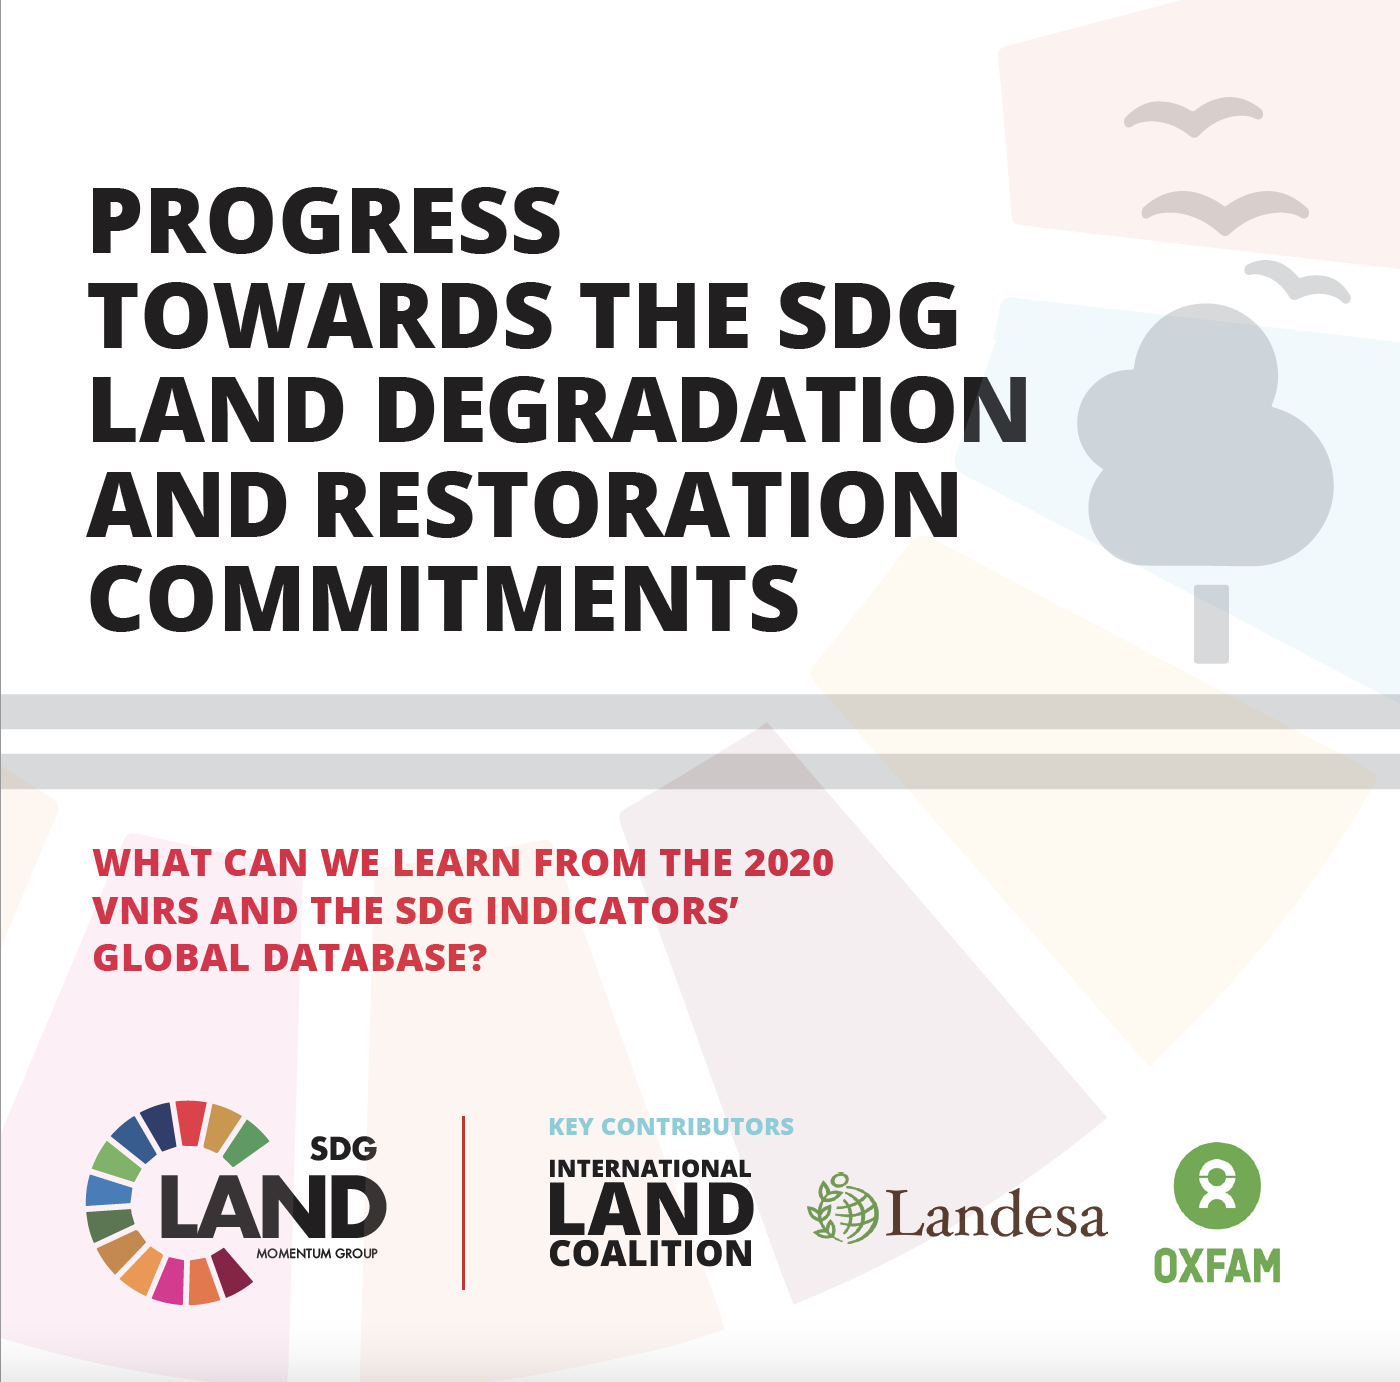 PROGRESS TOWARDS THE SDG LAND DEGRADATION AND RESTORATION COMMITMENTS